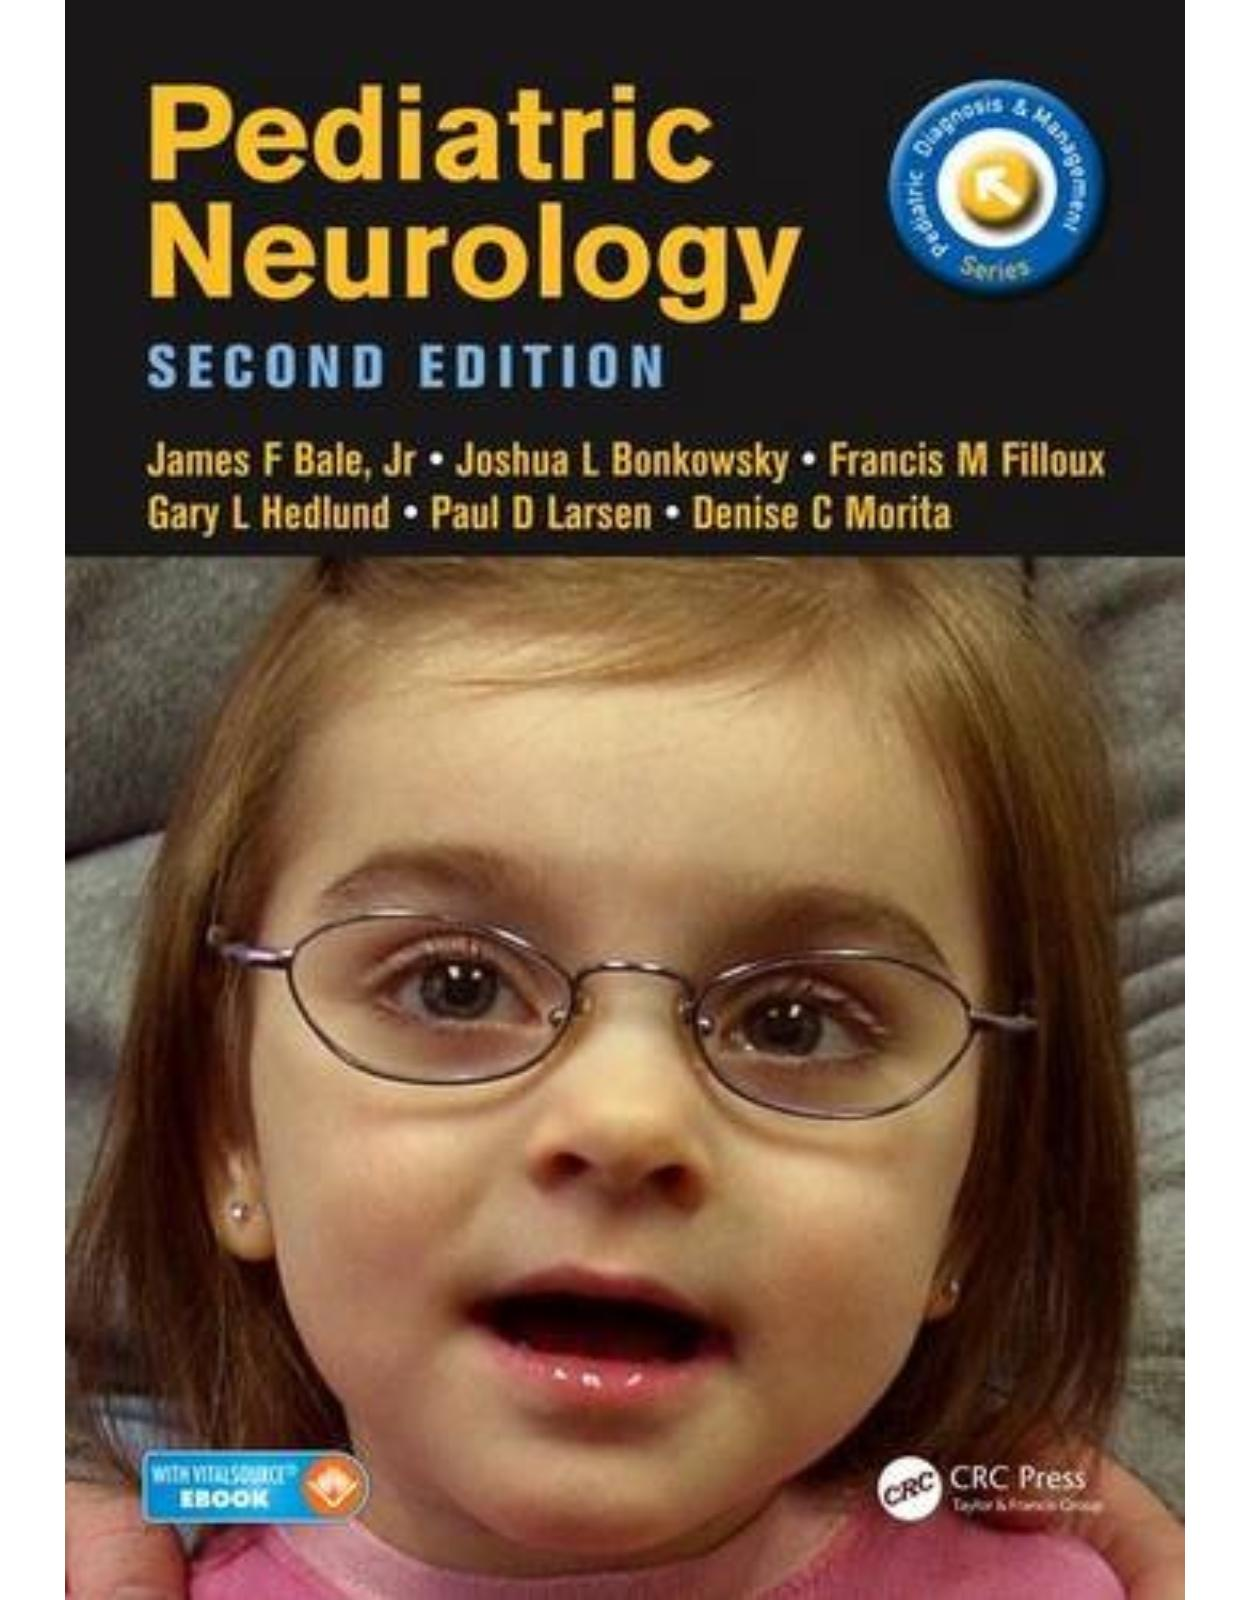 Pediatric Neurology, Second Edition